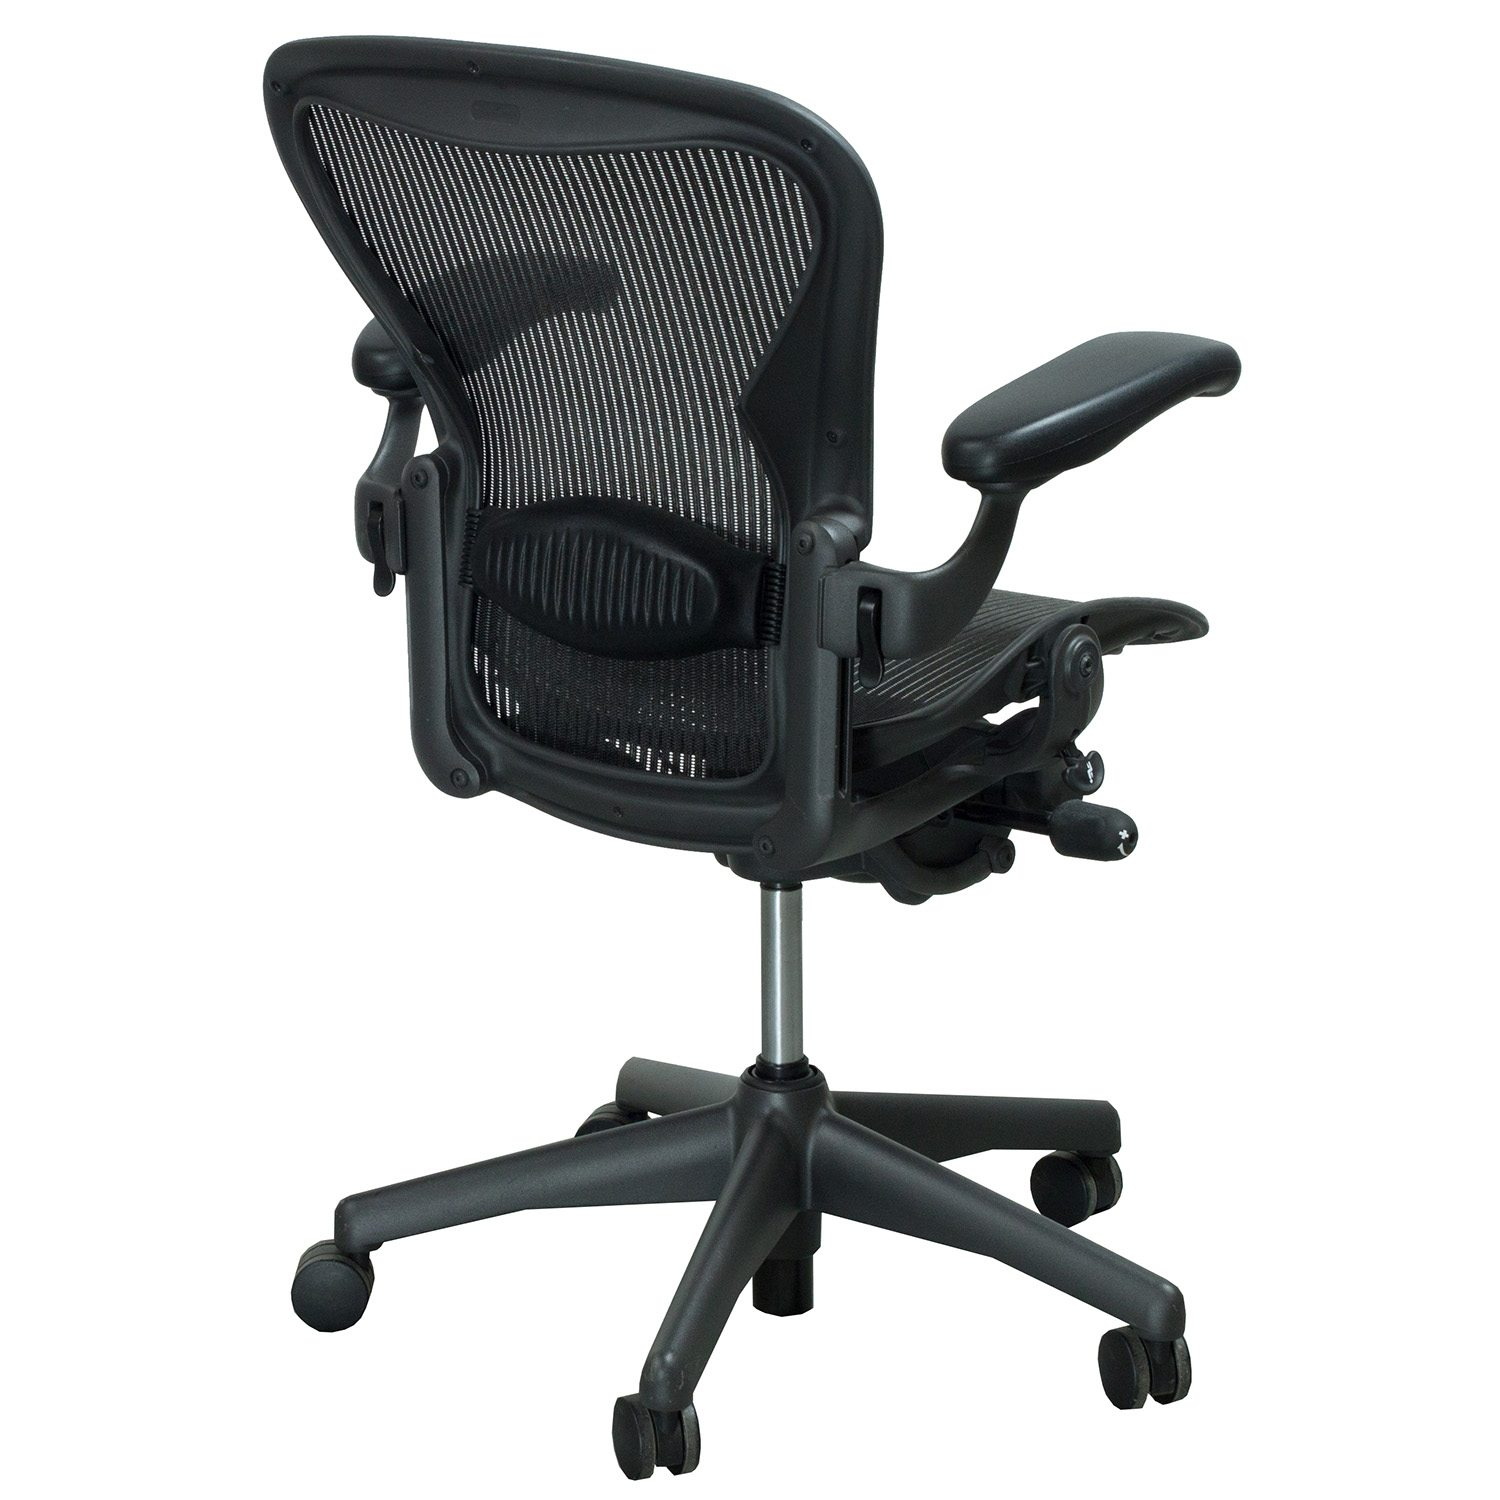 aeron office chairs amazon beach chair masina de spalat pret romania used